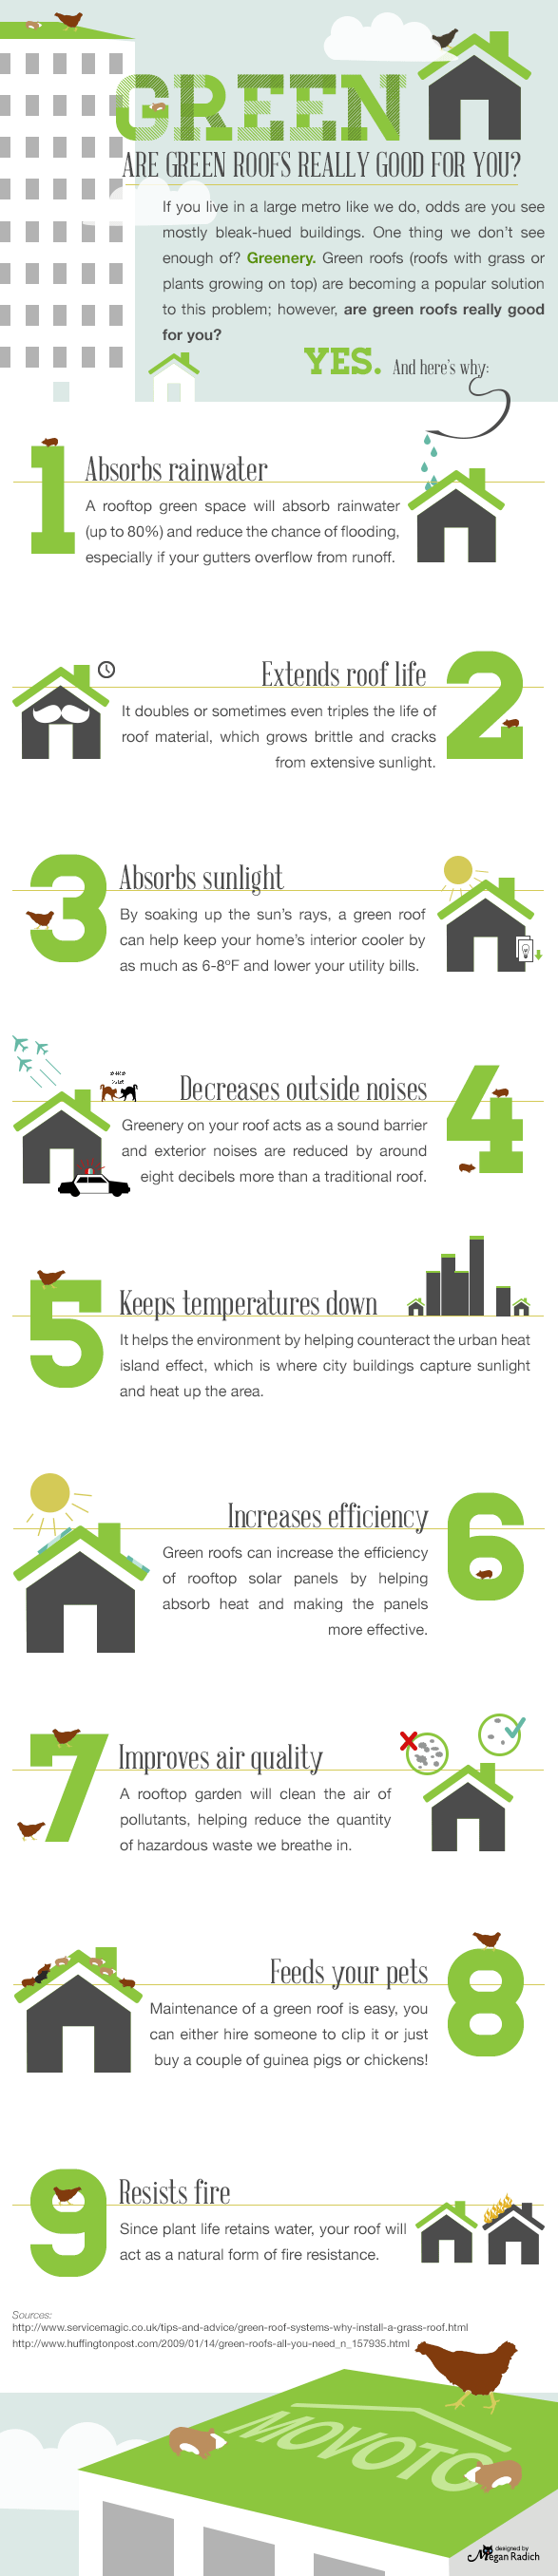 green roof infographic